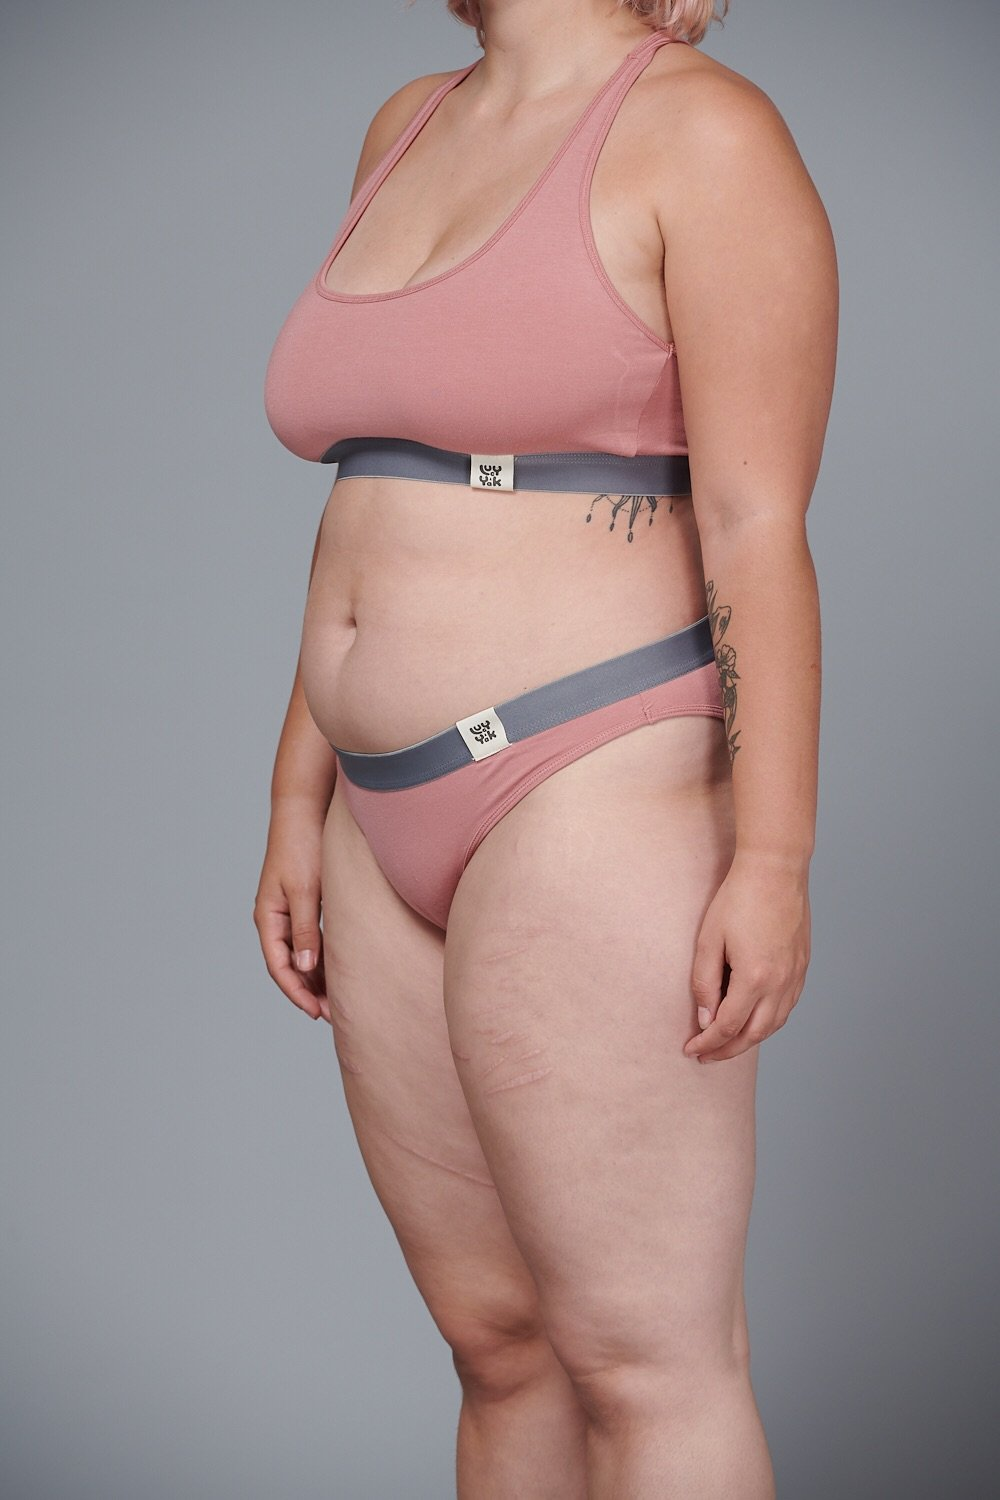 Lucy & Yak 'Ivy' Bamboo Women's Brief In Ash Pink